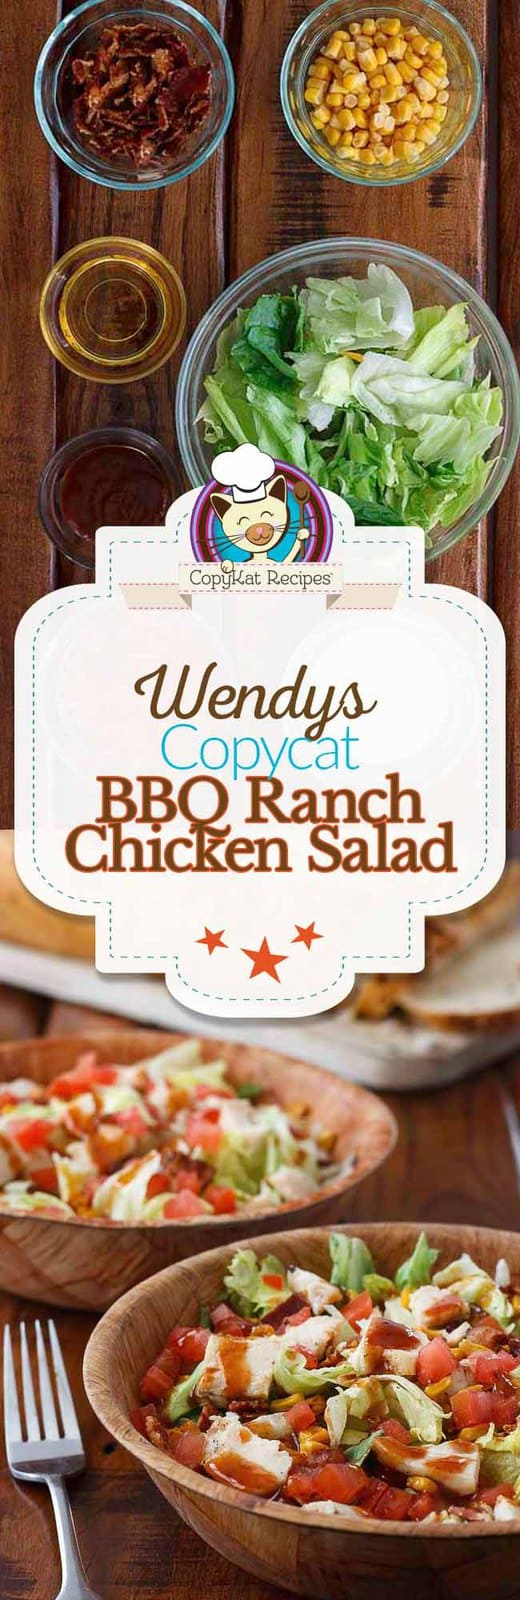 Make a meal out of a salad with this copycat recipe for Wendy's BBQ Ranch Chicken Salad.